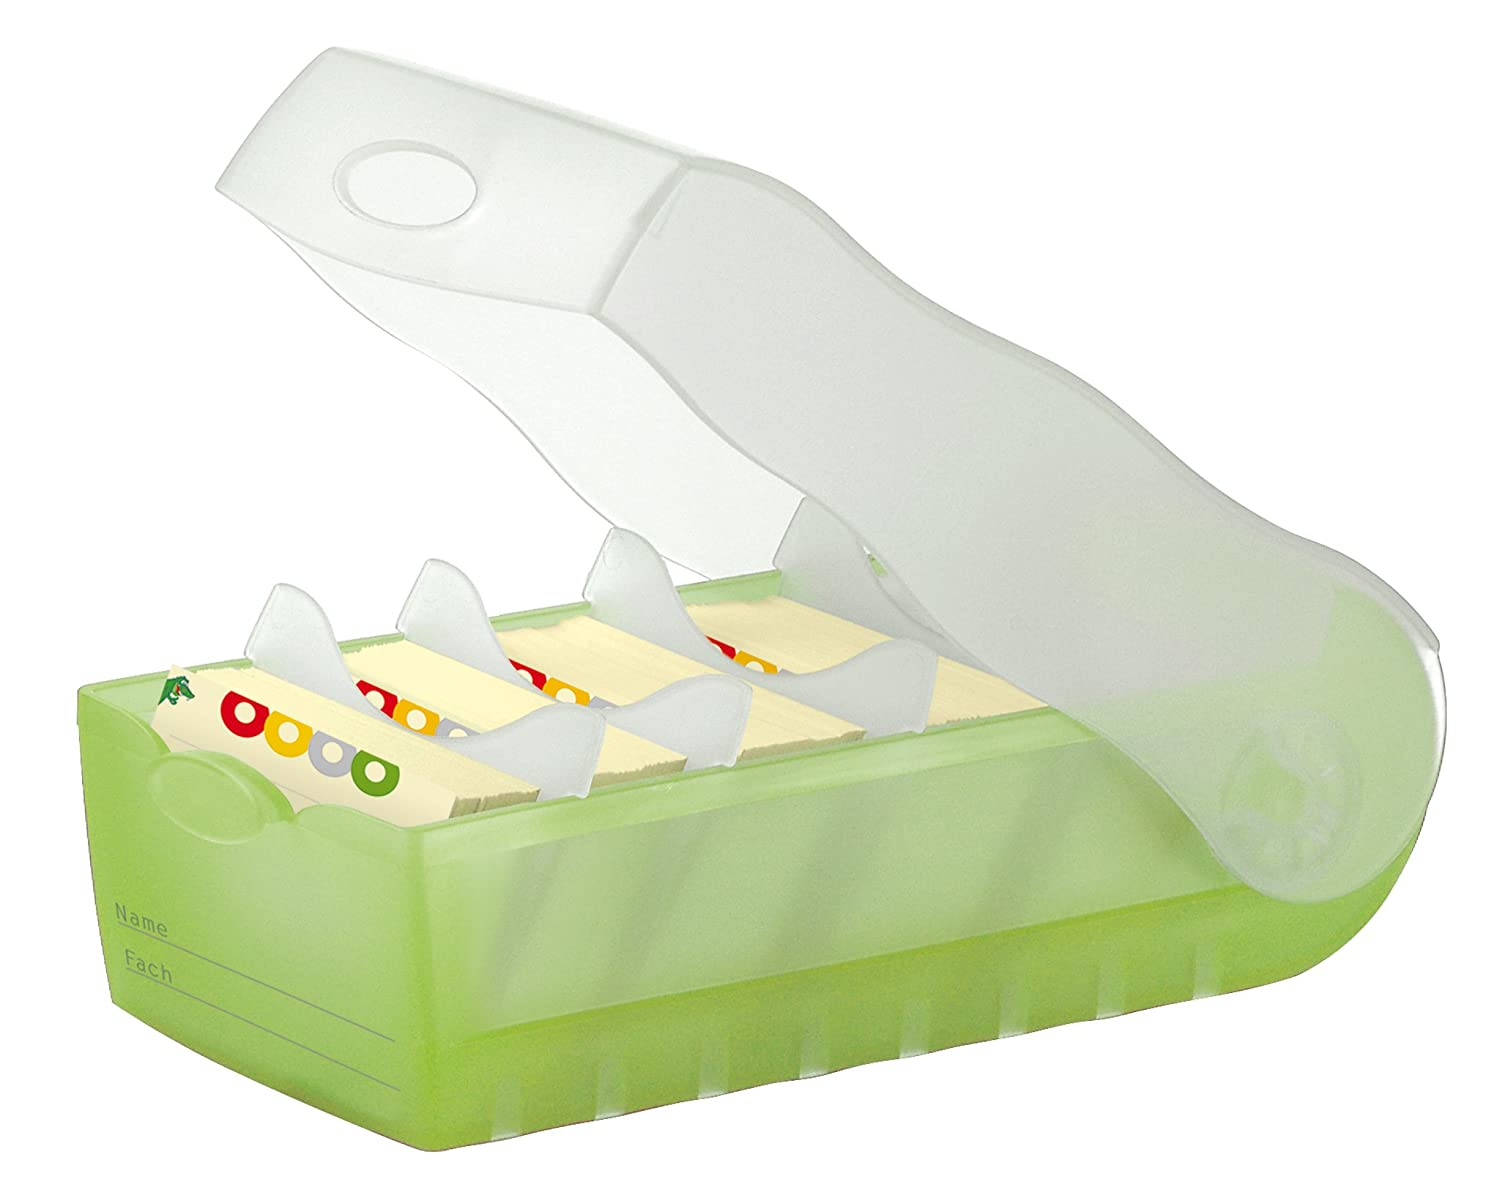 A8 For learning vocabulary in an ingeniously simple way translucent-purple CROCO Flashcard Index Box HAN 998-673